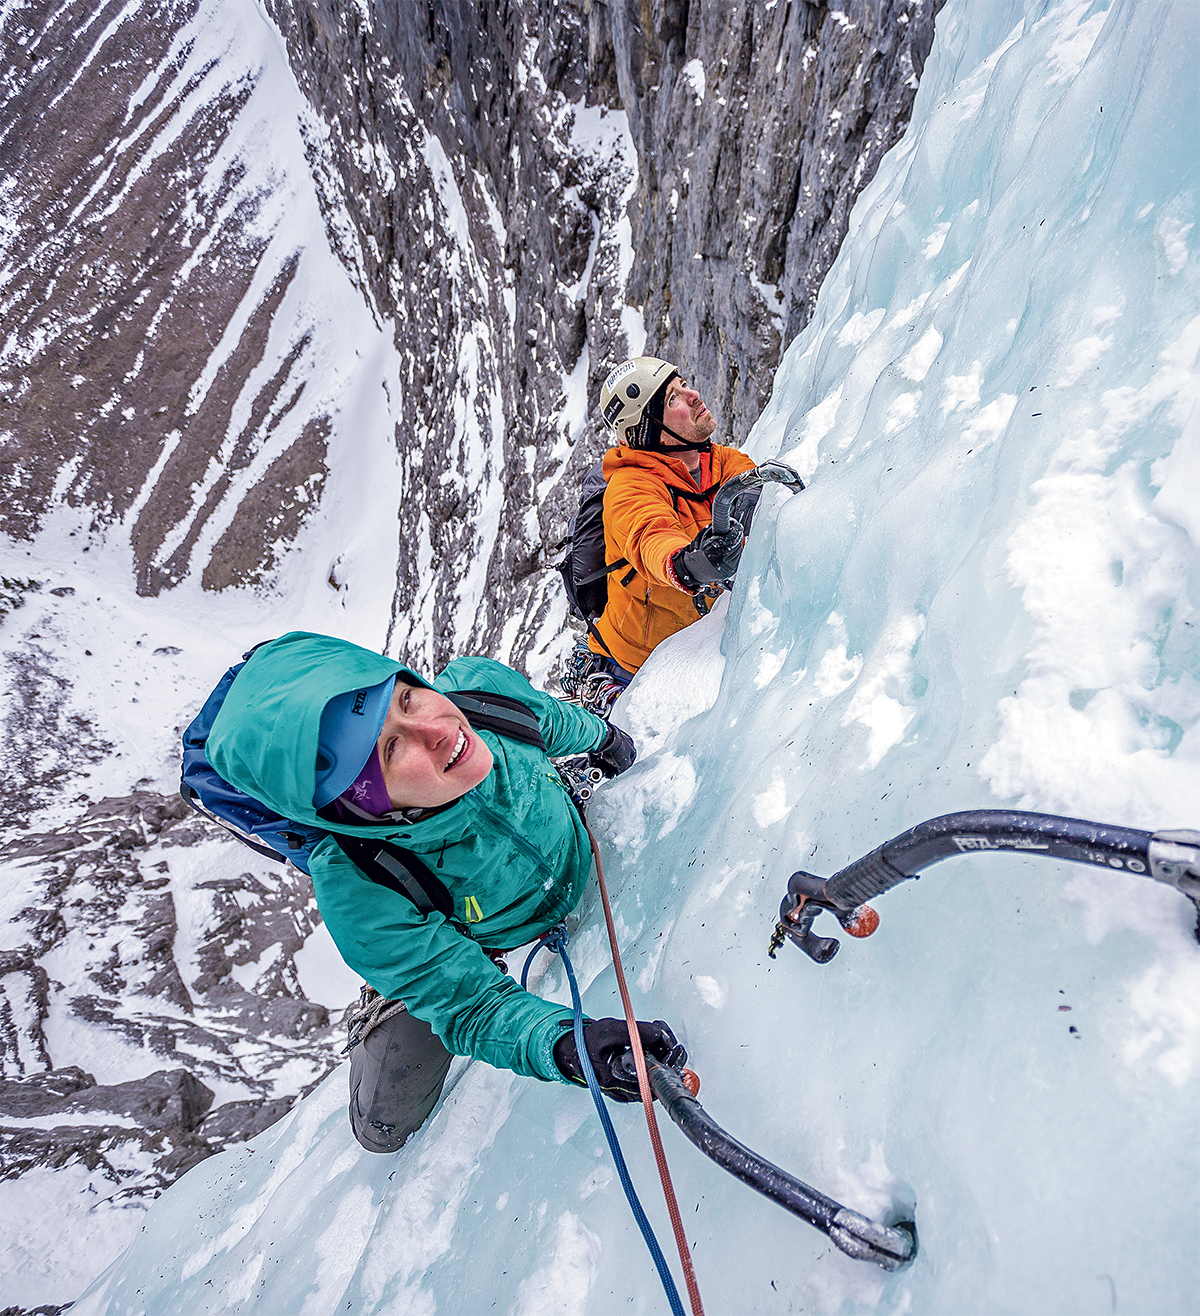 Anna Smith and Ian Greant on The Sorcerer, Alberta. [Photo] John Price